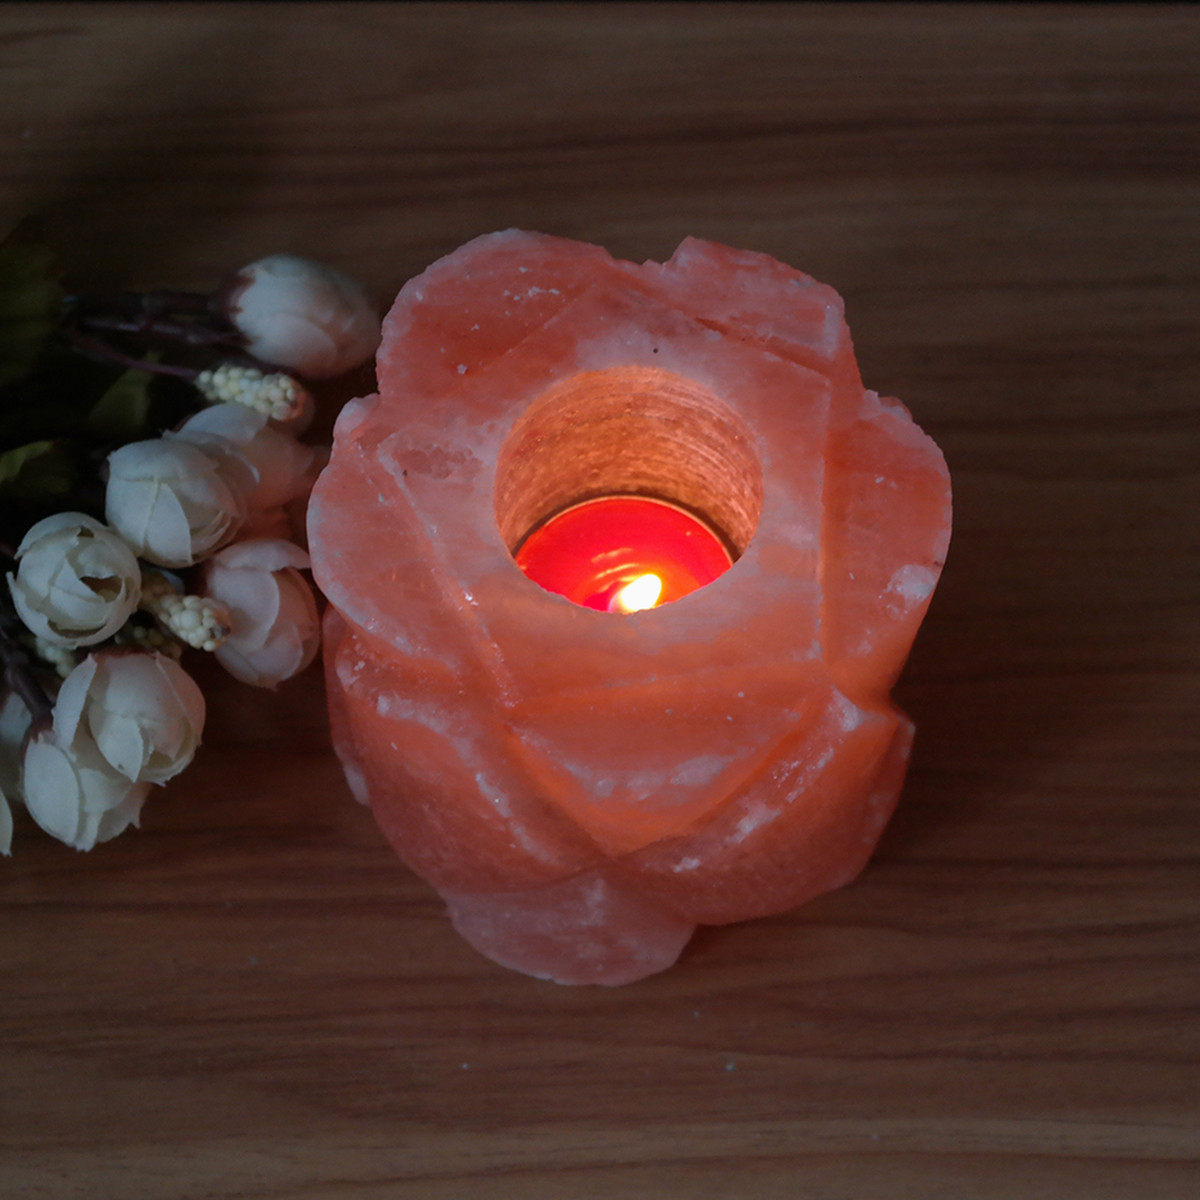 Himalayan Salt Lamps And Candle Holders : Cylindrical Flower Shape Himalayan Natural Crystal Rock Salt Lamp Candle Holder Home Decor ...